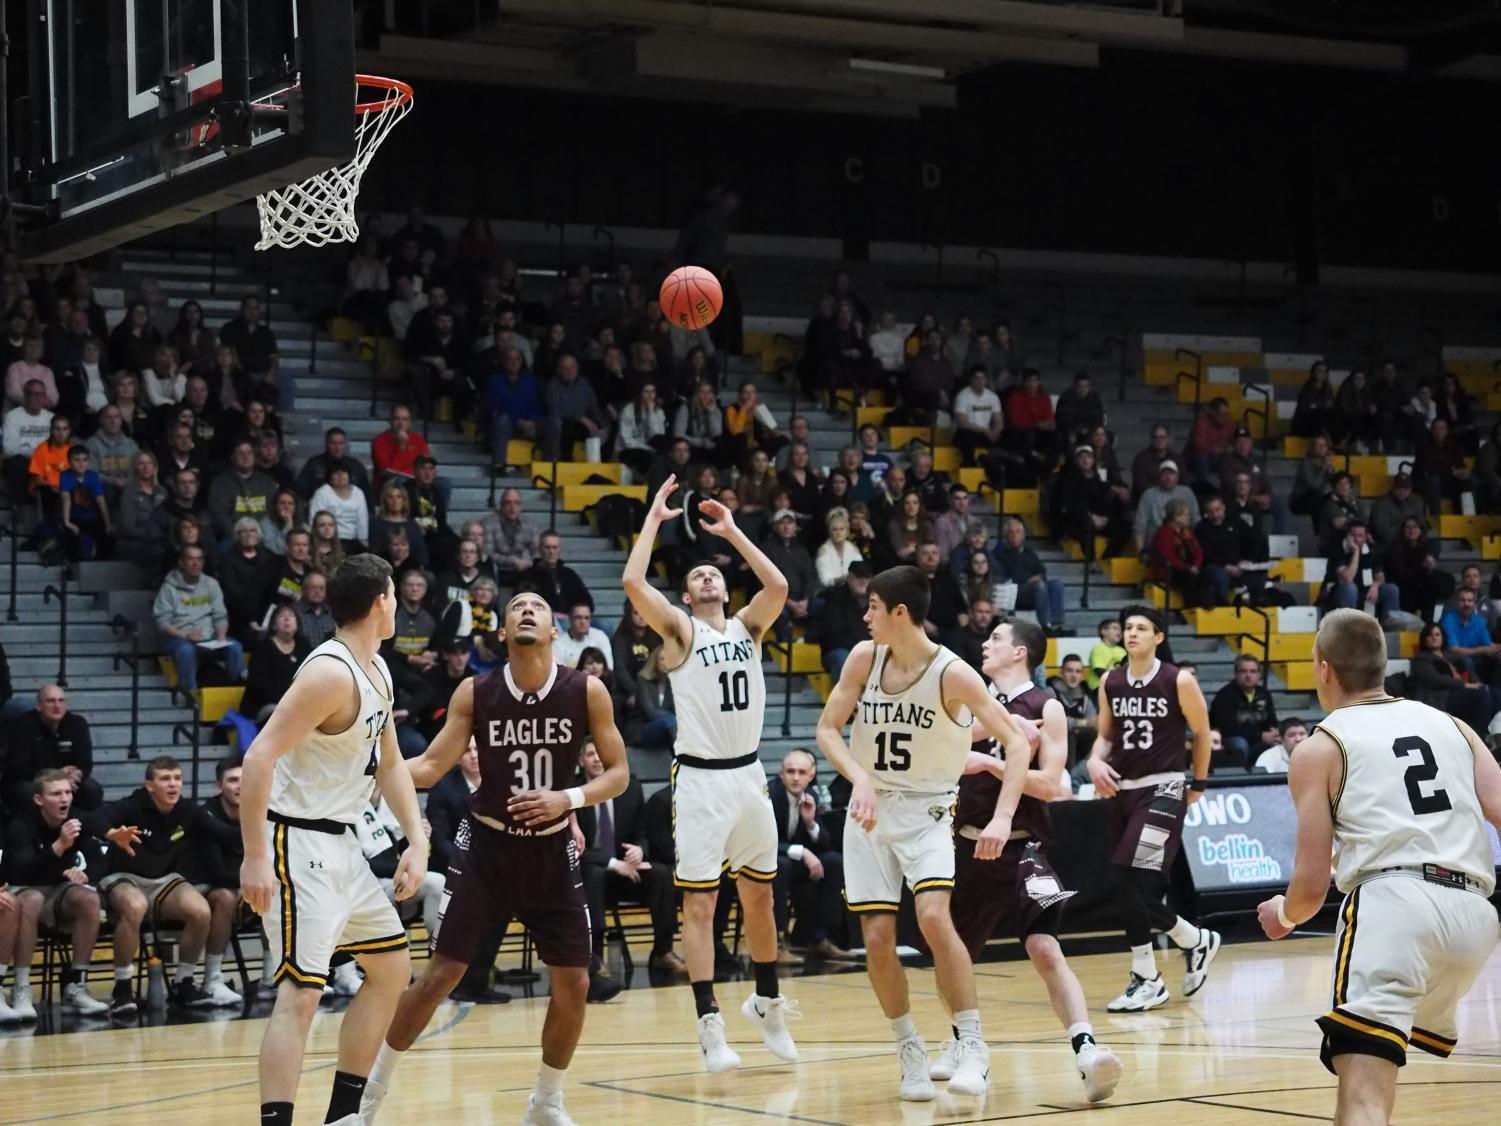 The trio of UW Oshkosh athletes, senior guard Jake Laihnen (10), sophomore forward Adam Fravert (15) and sophomore center Jack Flynn, look to gather in a loose ball against UW-La Crosse. The three combined for 29 points on February 10.